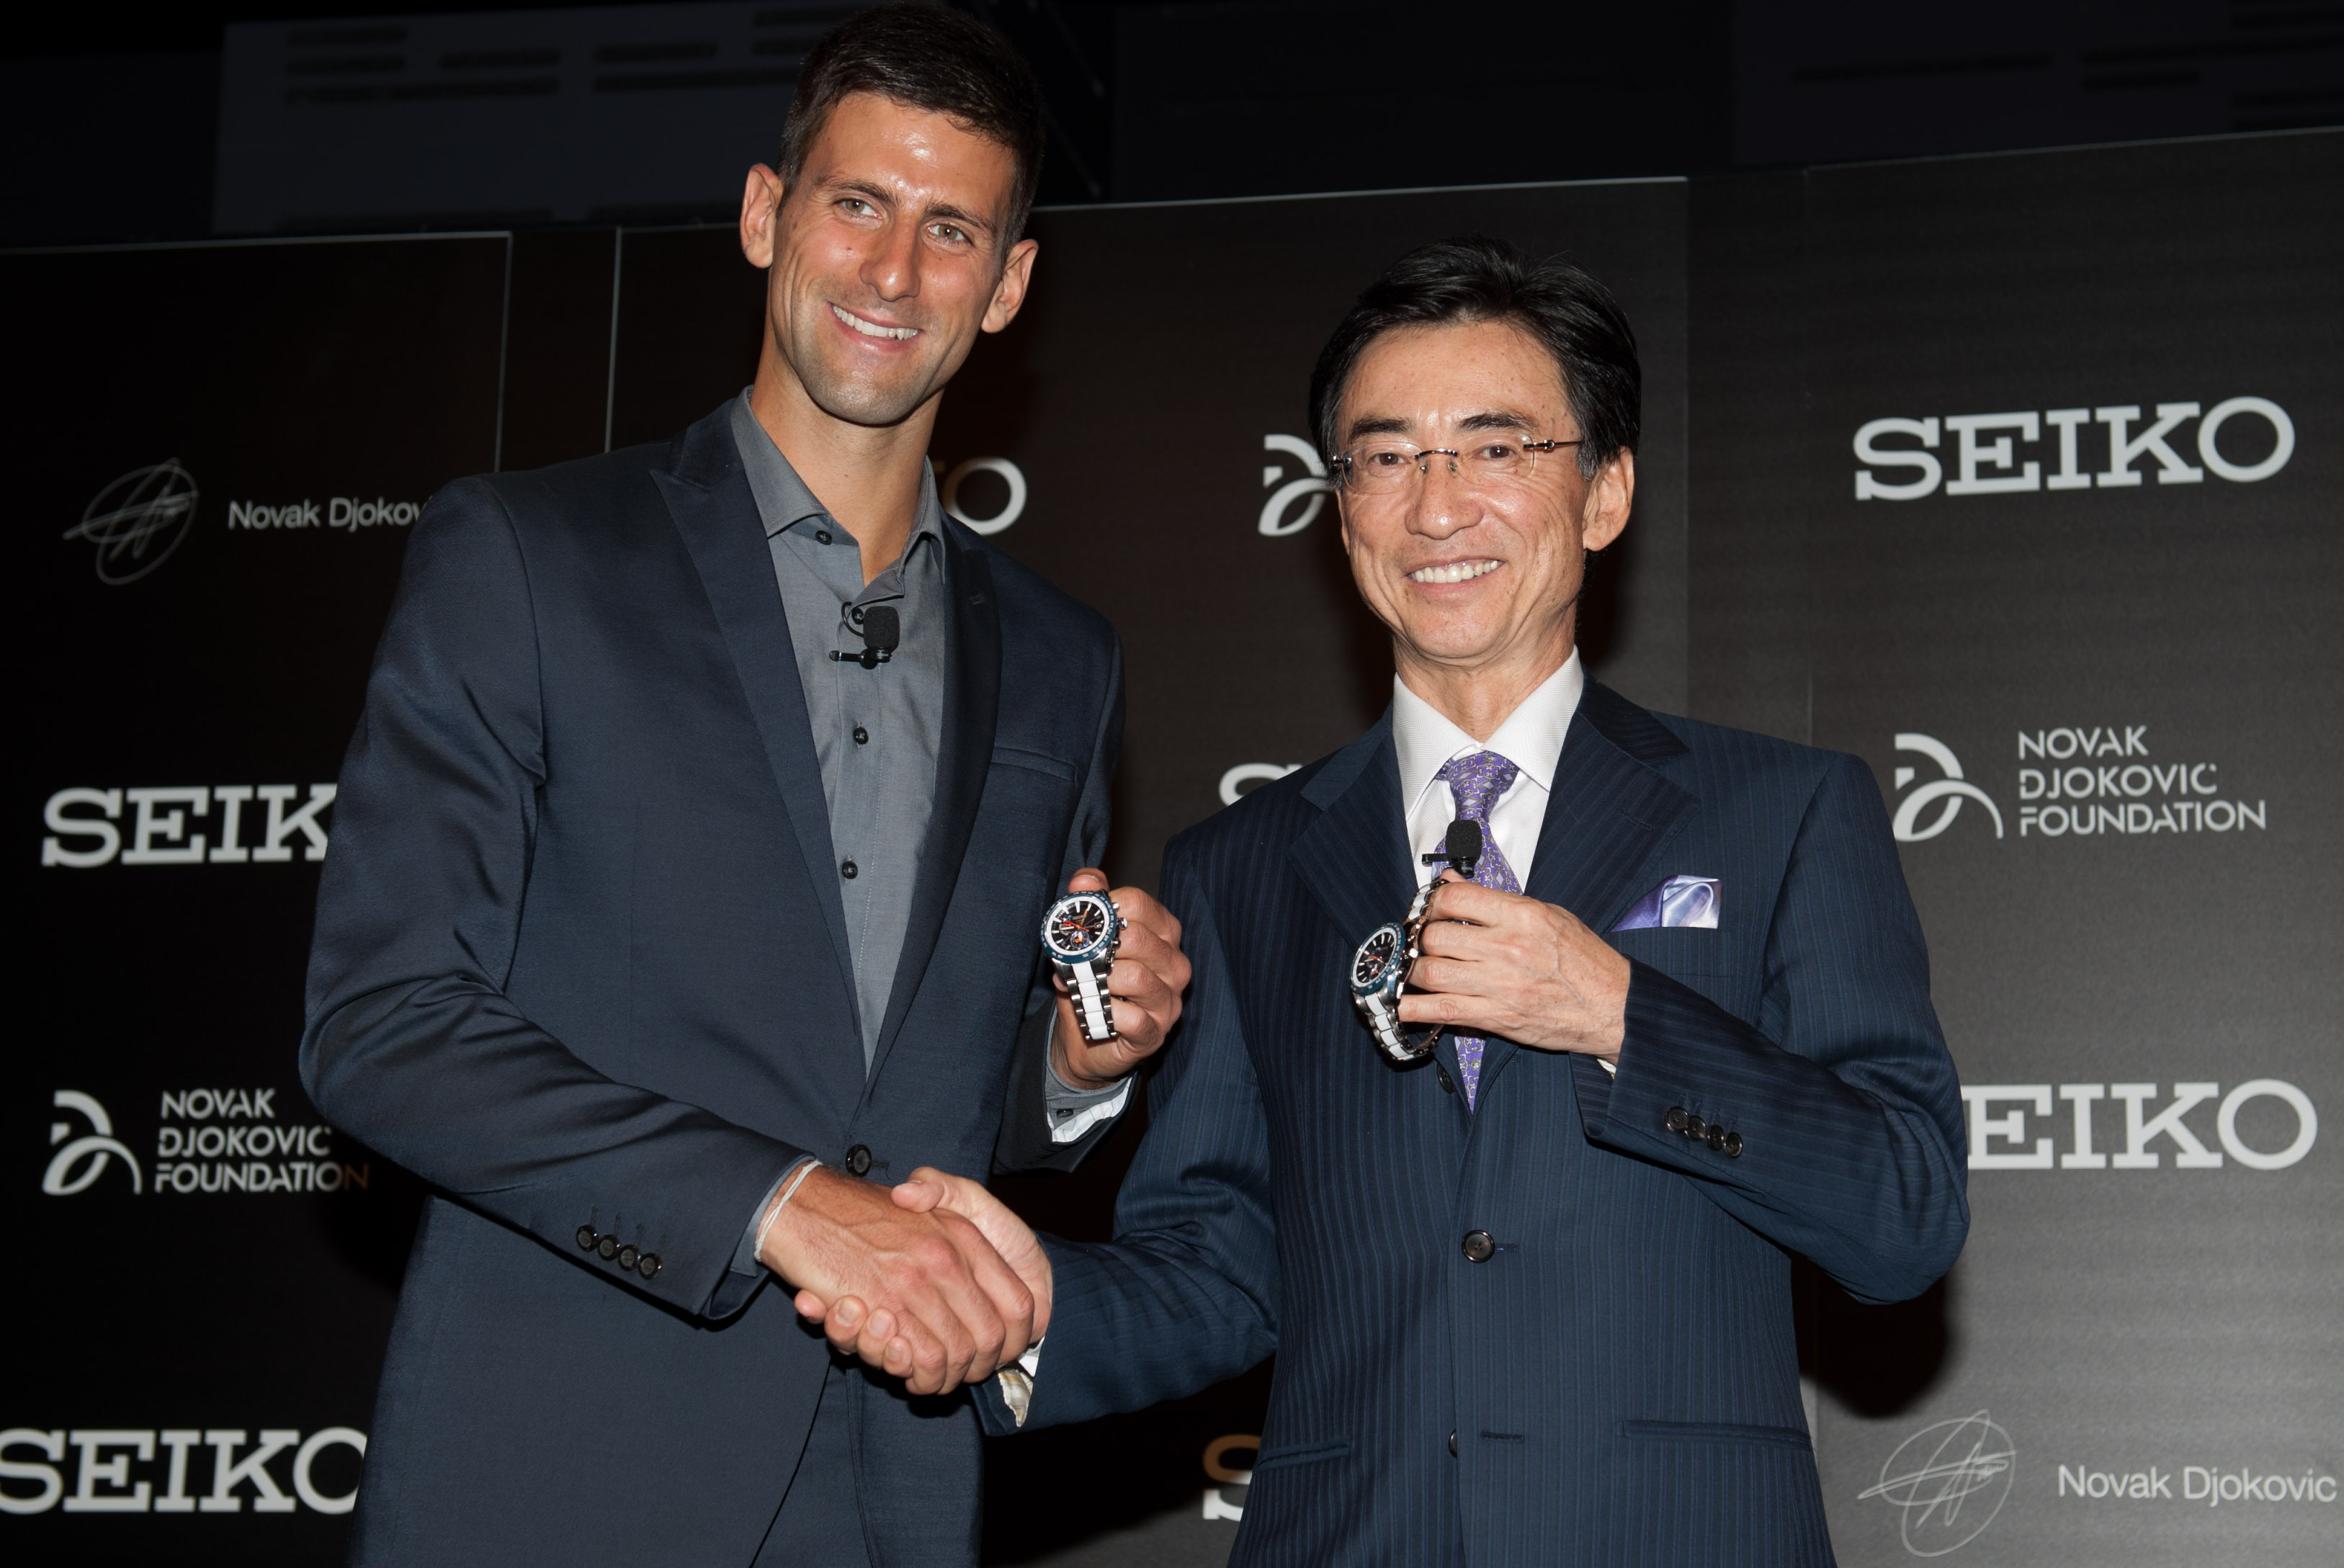 Montre Seiko Novak Djokovic